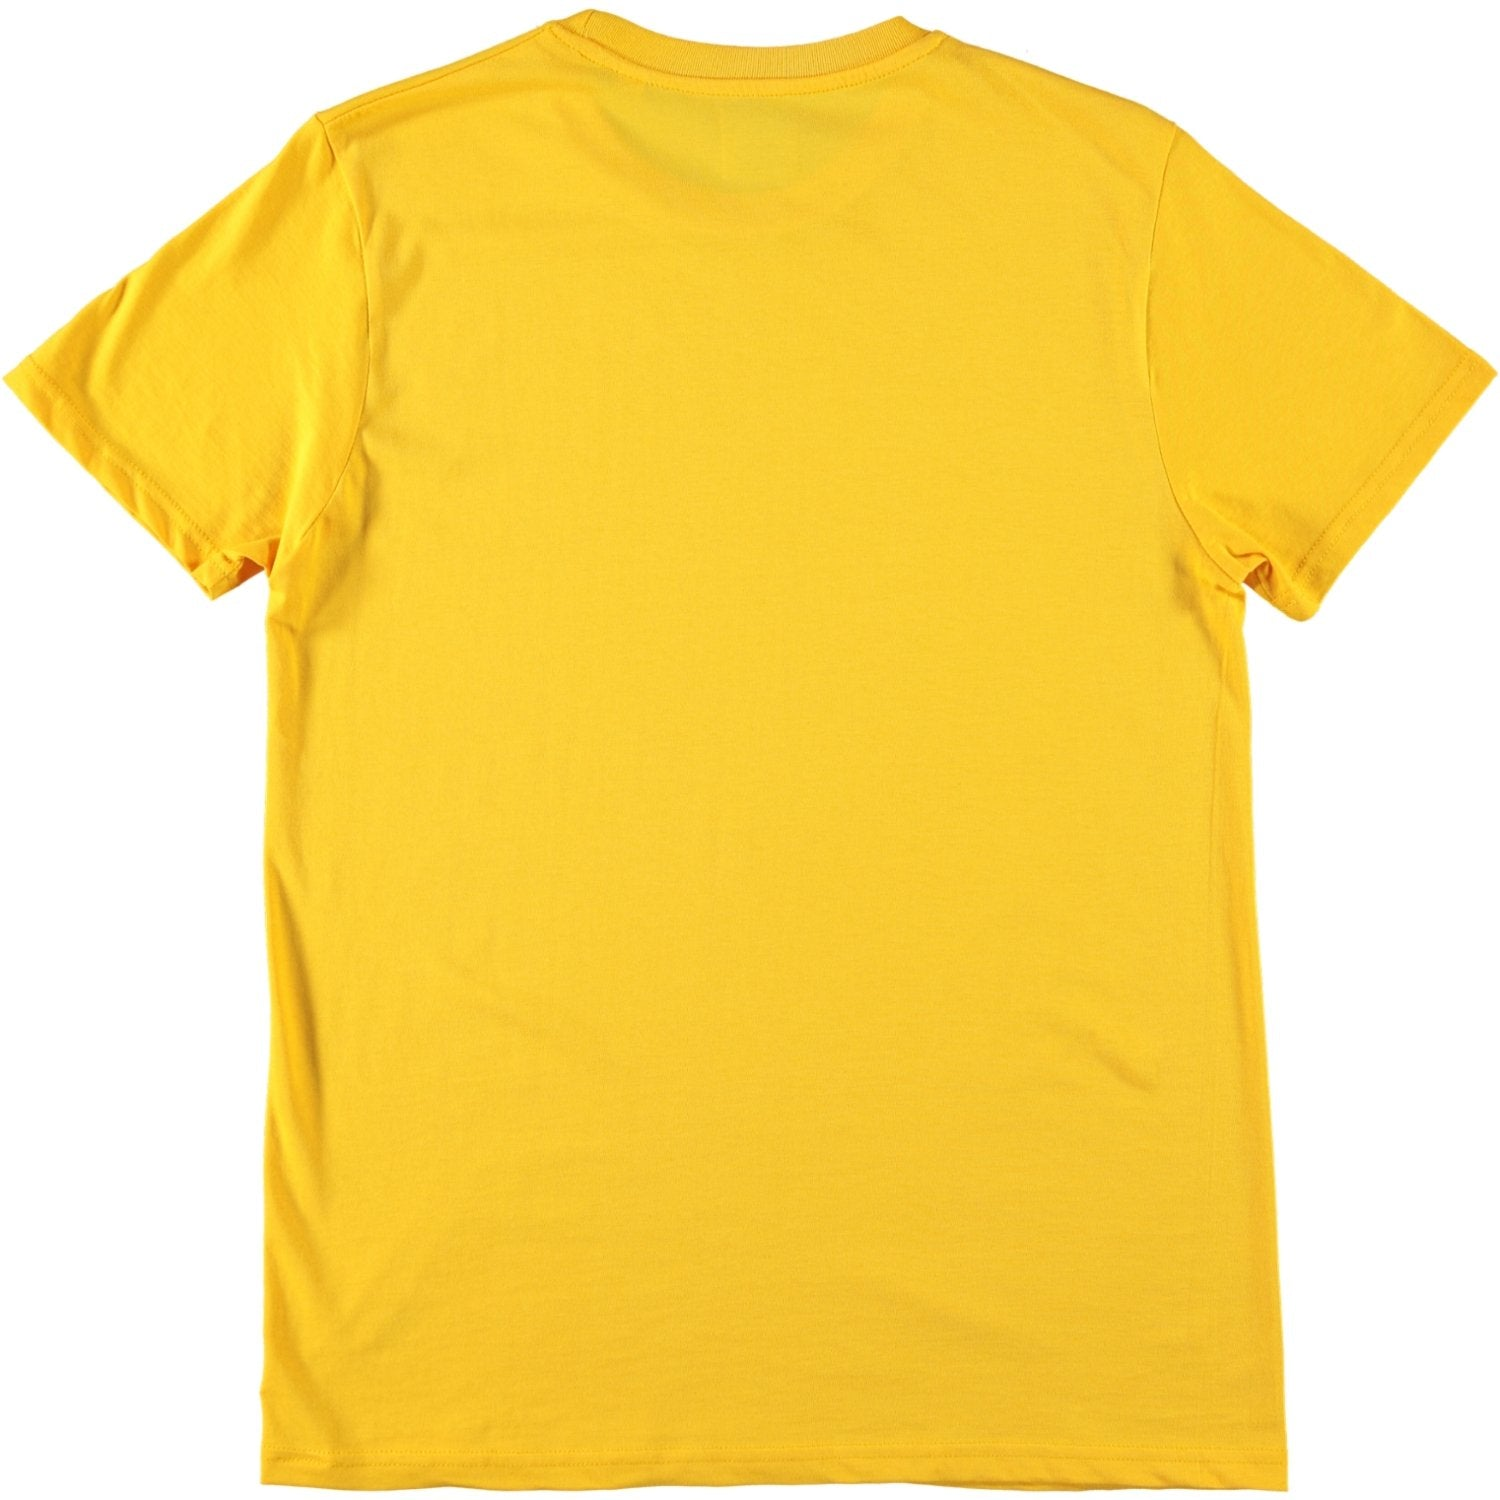 SRM x Trafford Parsons Rebel,Rebel Tee Spectra Yellow